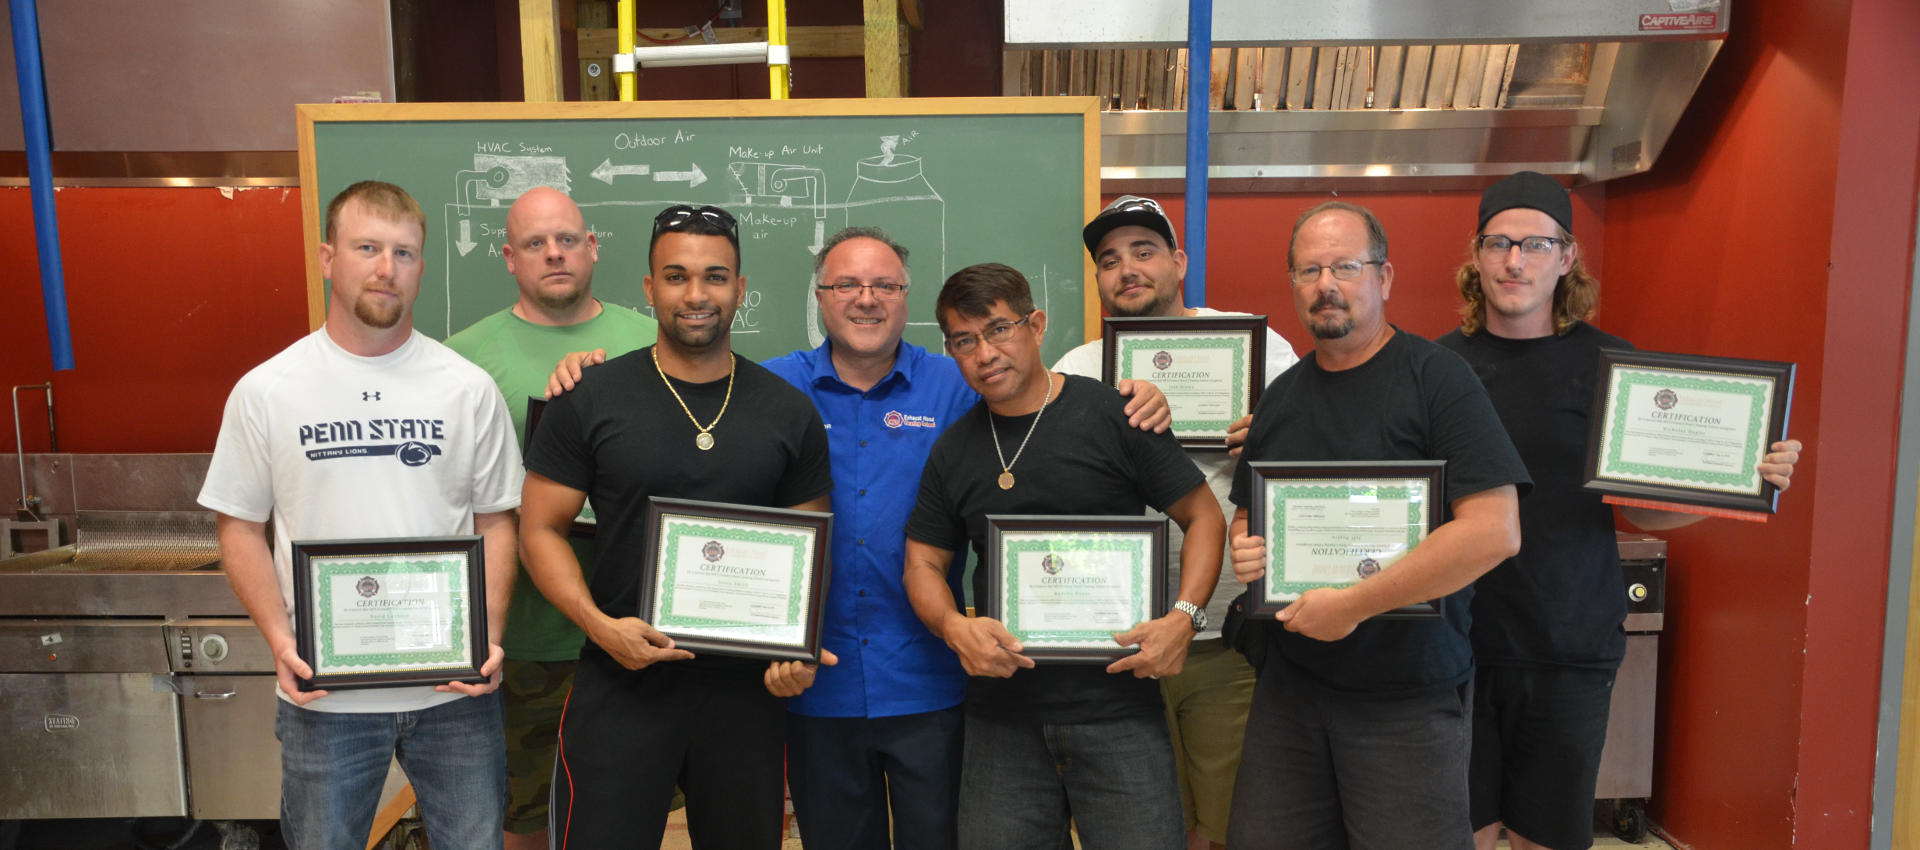 Exhaust Hood Certification and Vent a Hood Cleaning School | MFS